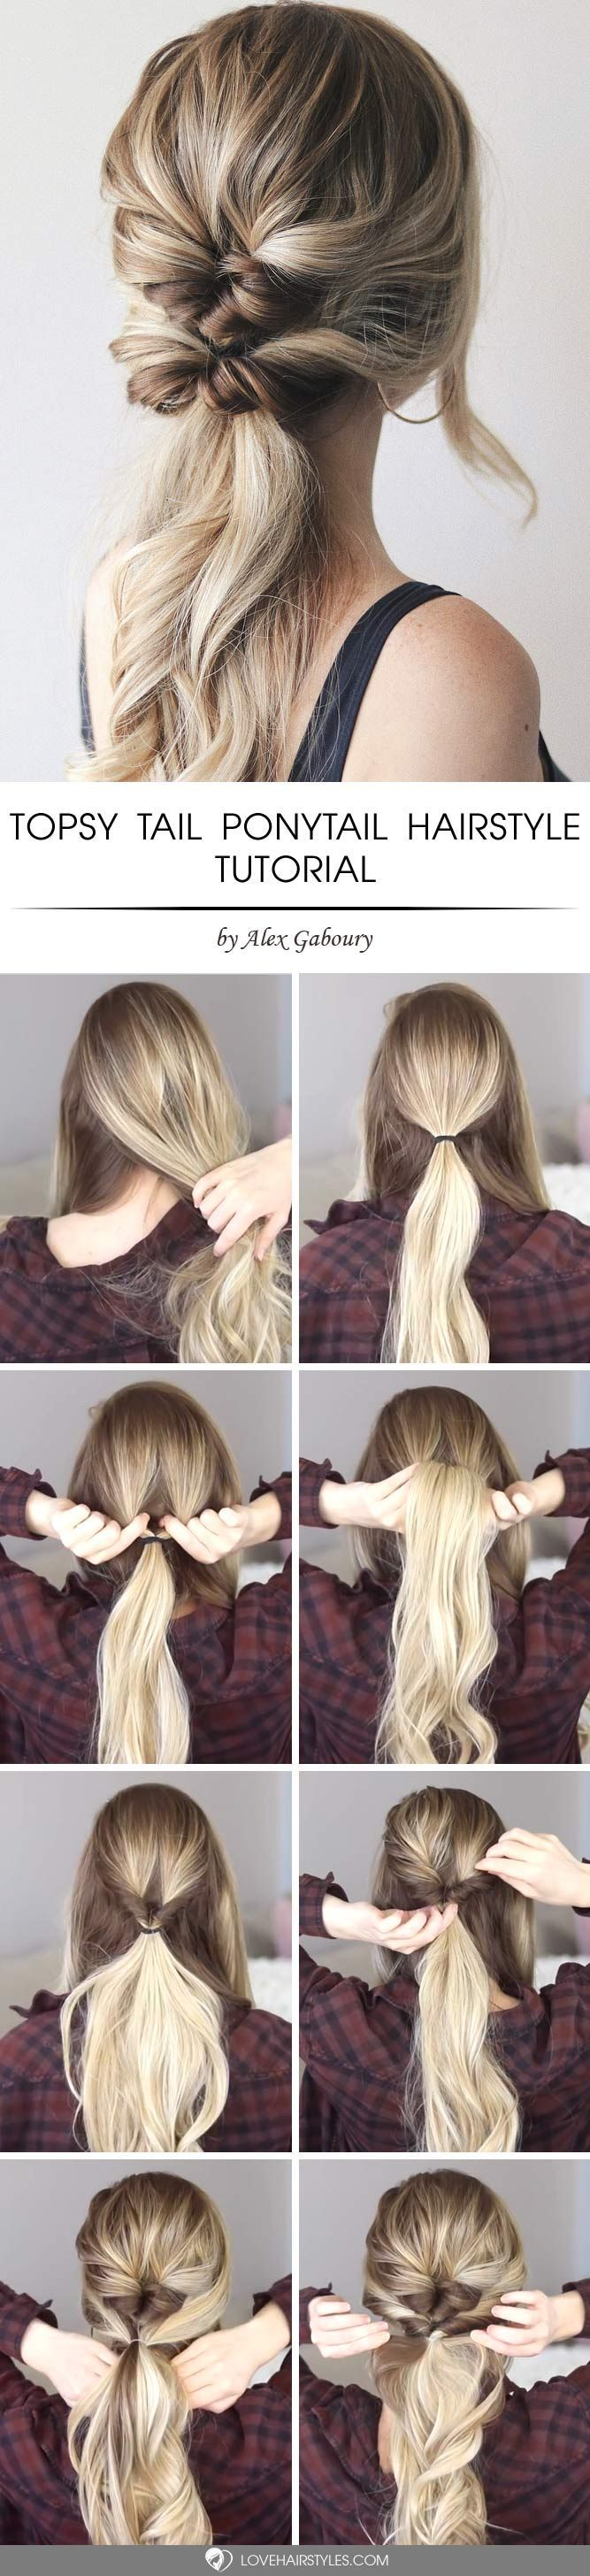 10 Useful Tutorials On How To Get Topsy Tail Hairstyles